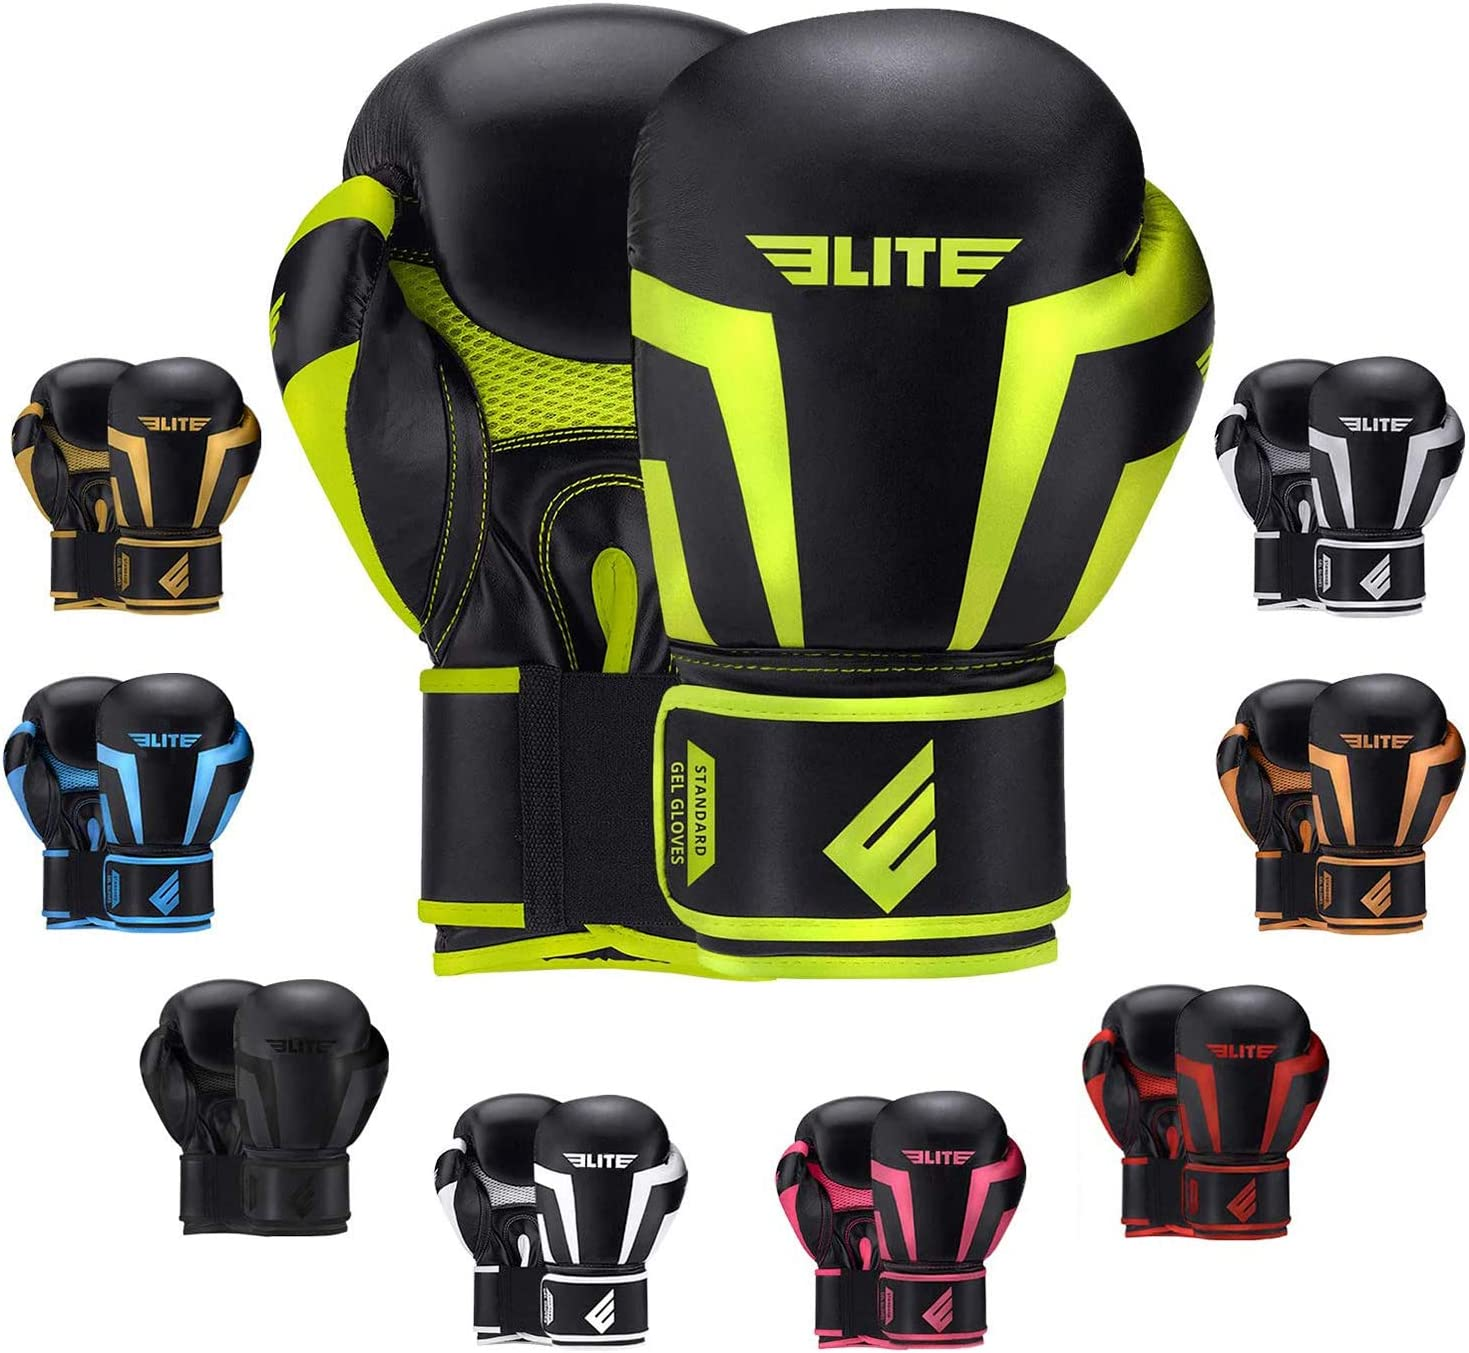 2021 Pro Boxing Gloves for Kids Women service Training Free shipping on posting reviews Glo Men